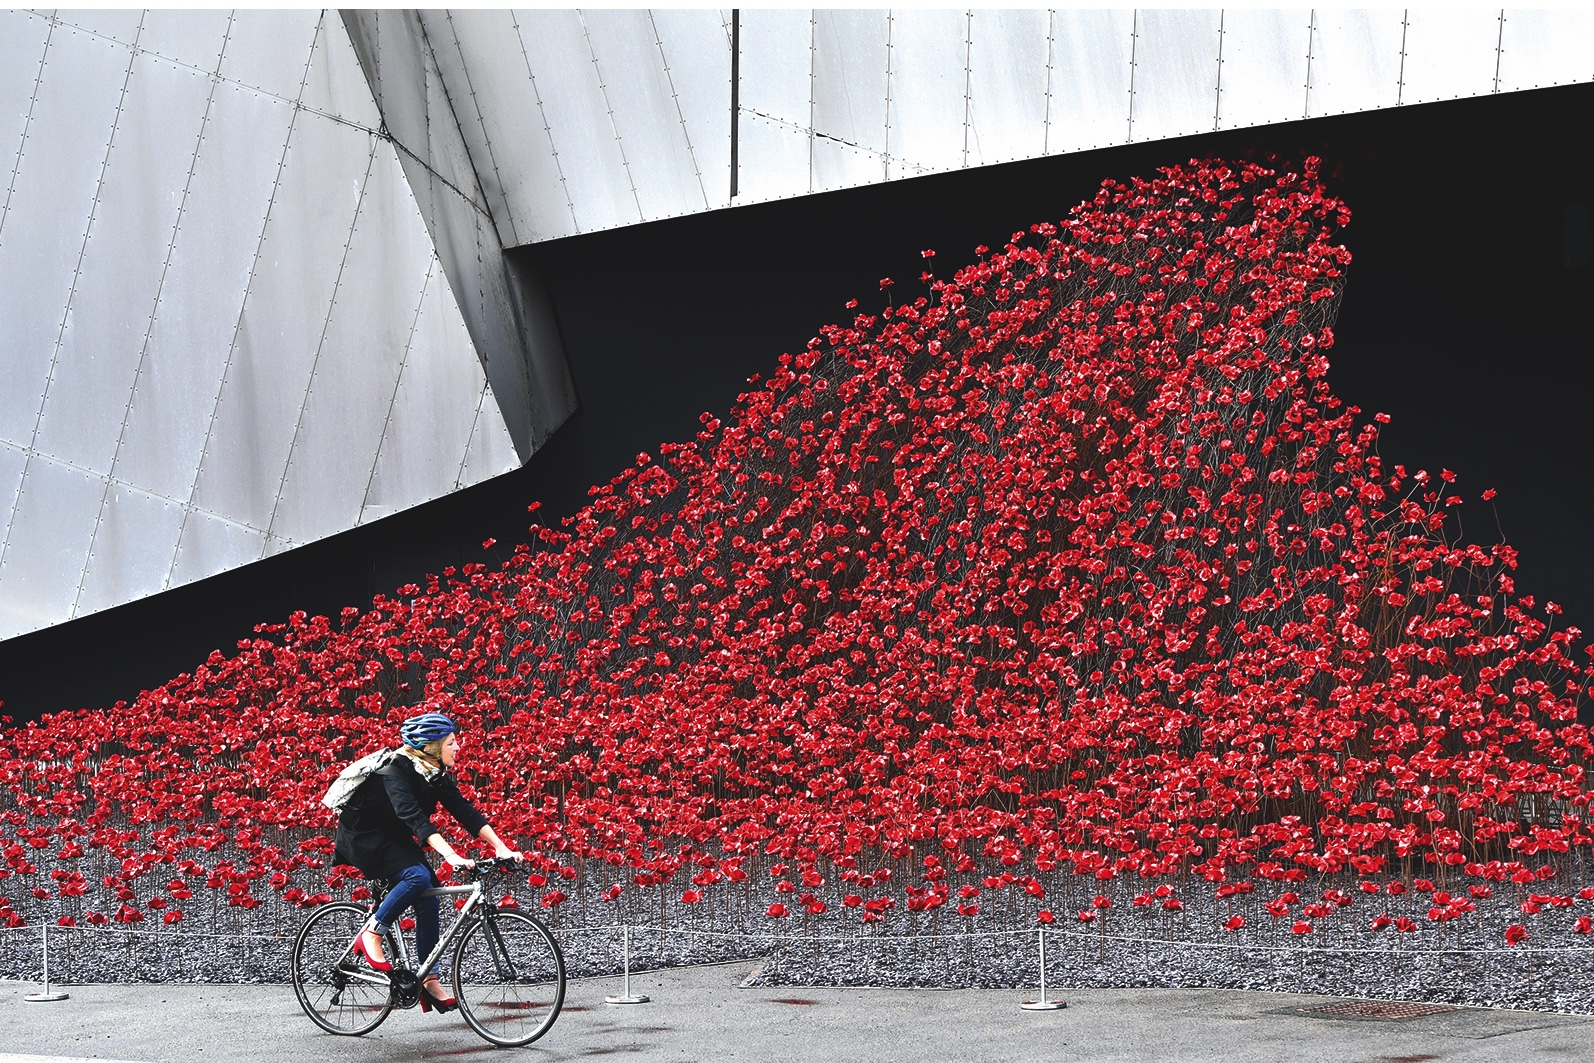 100 years of remembrance: events from around Britain